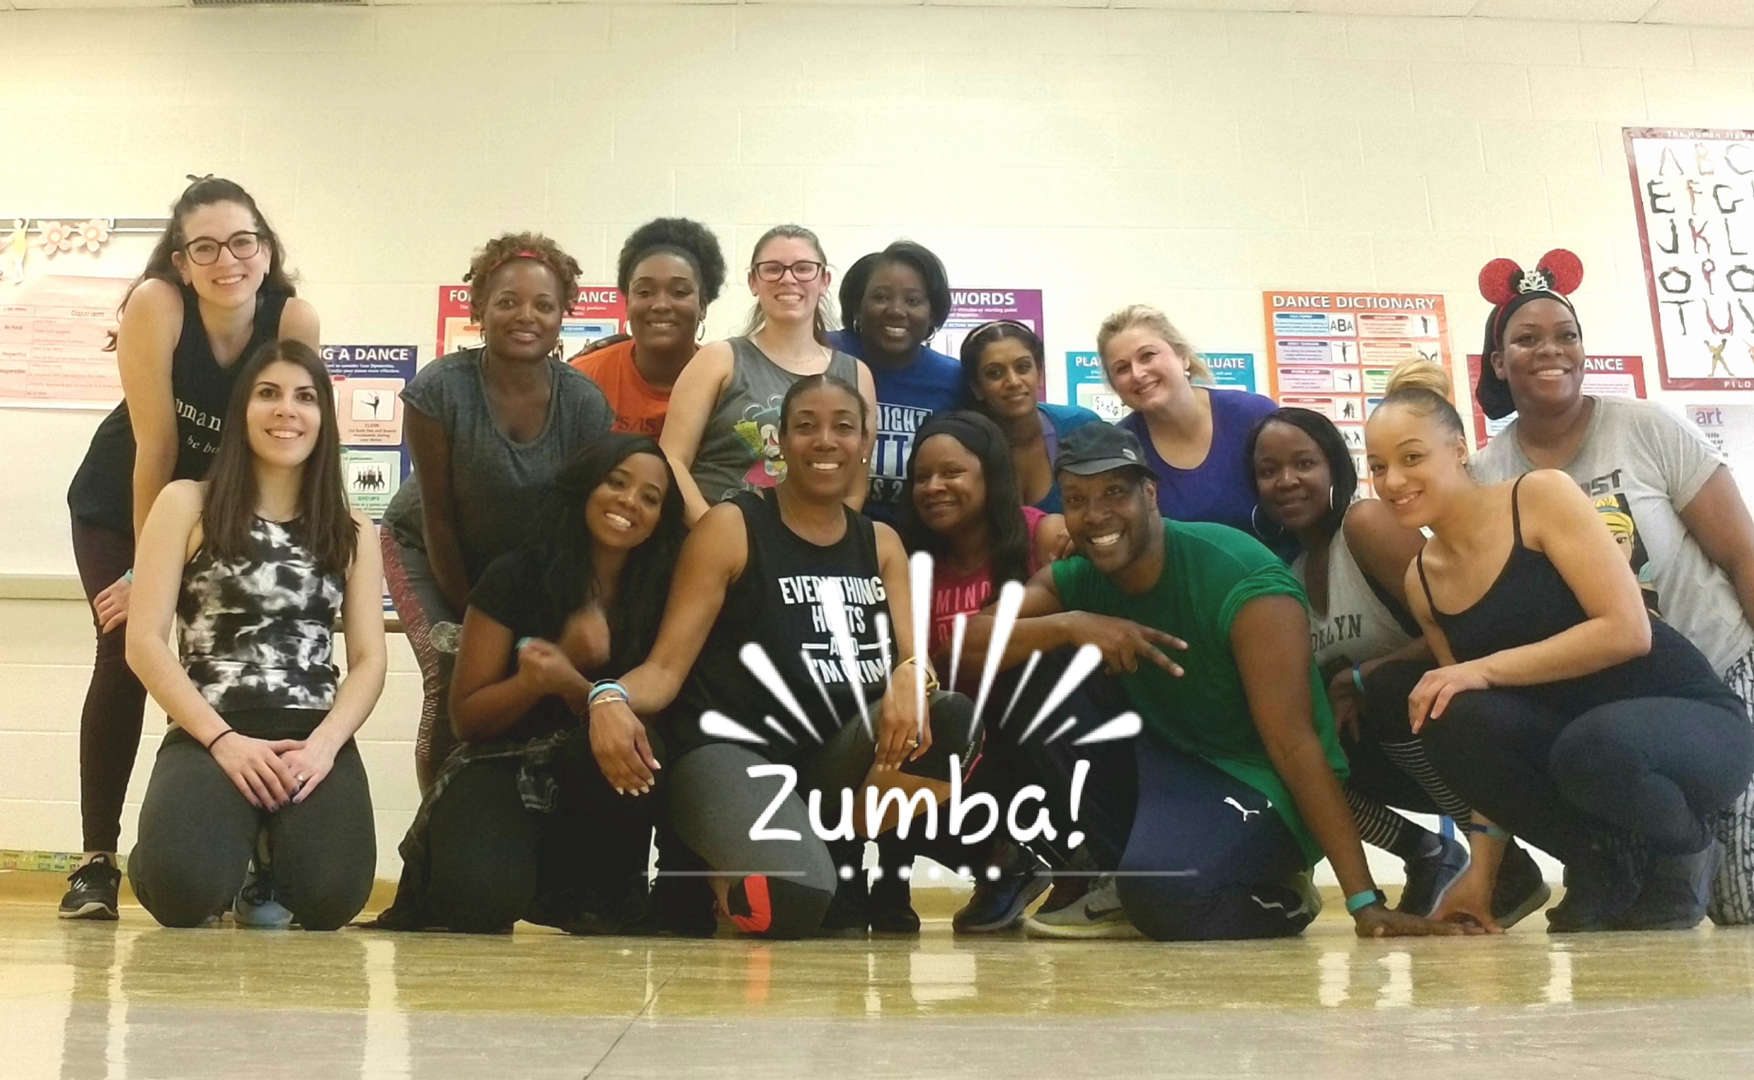 staff poses after zumba class